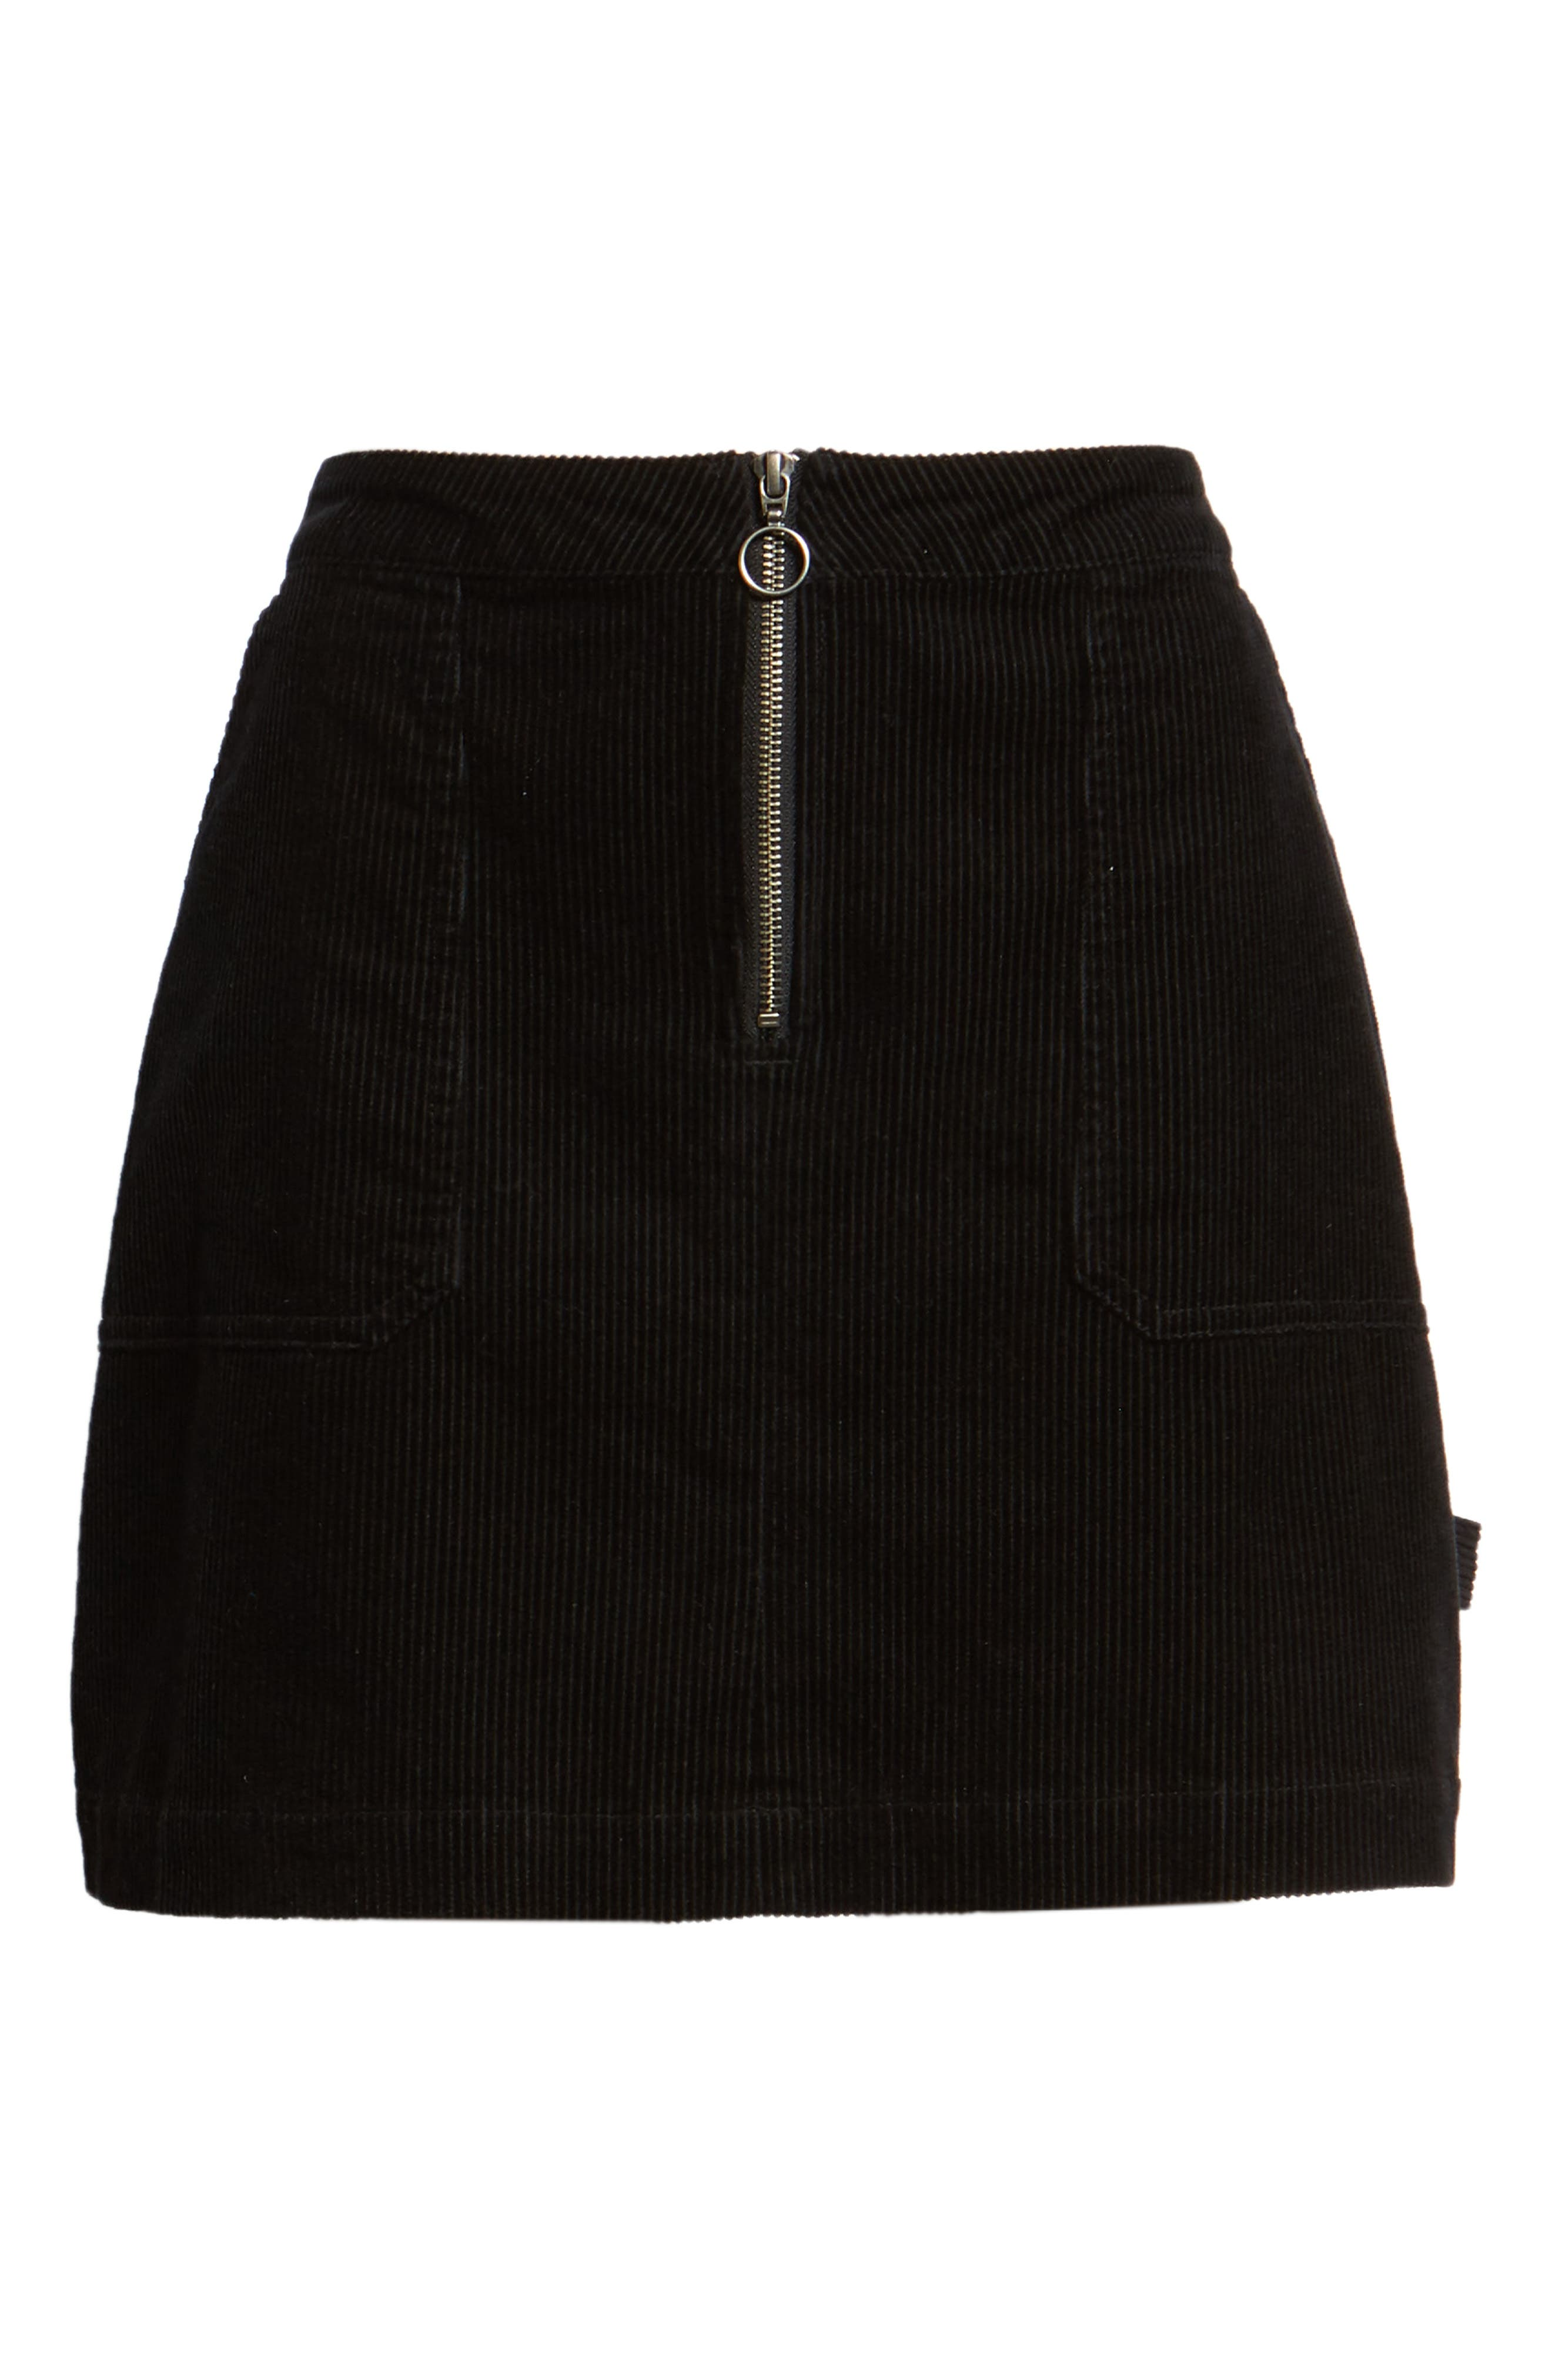 Corduroy Utility Skirt,                             Alternate thumbnail 6, color,                             BLACK